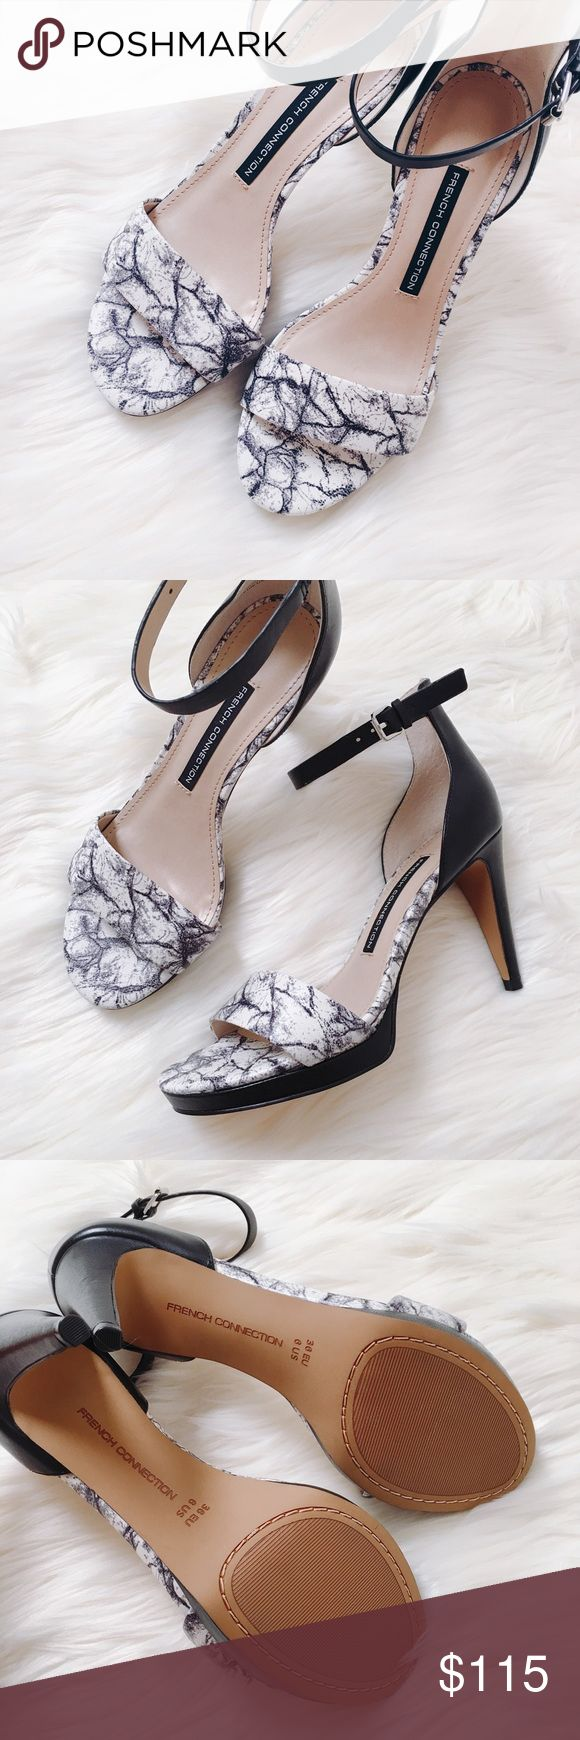 "French Connection 🌷 | open toe high heel sandal Chic ankle strap sandals in a unique marbleized print. Heel height is approx. 3 3/4"". Cute for going out! French Connection Shoes Sandals"